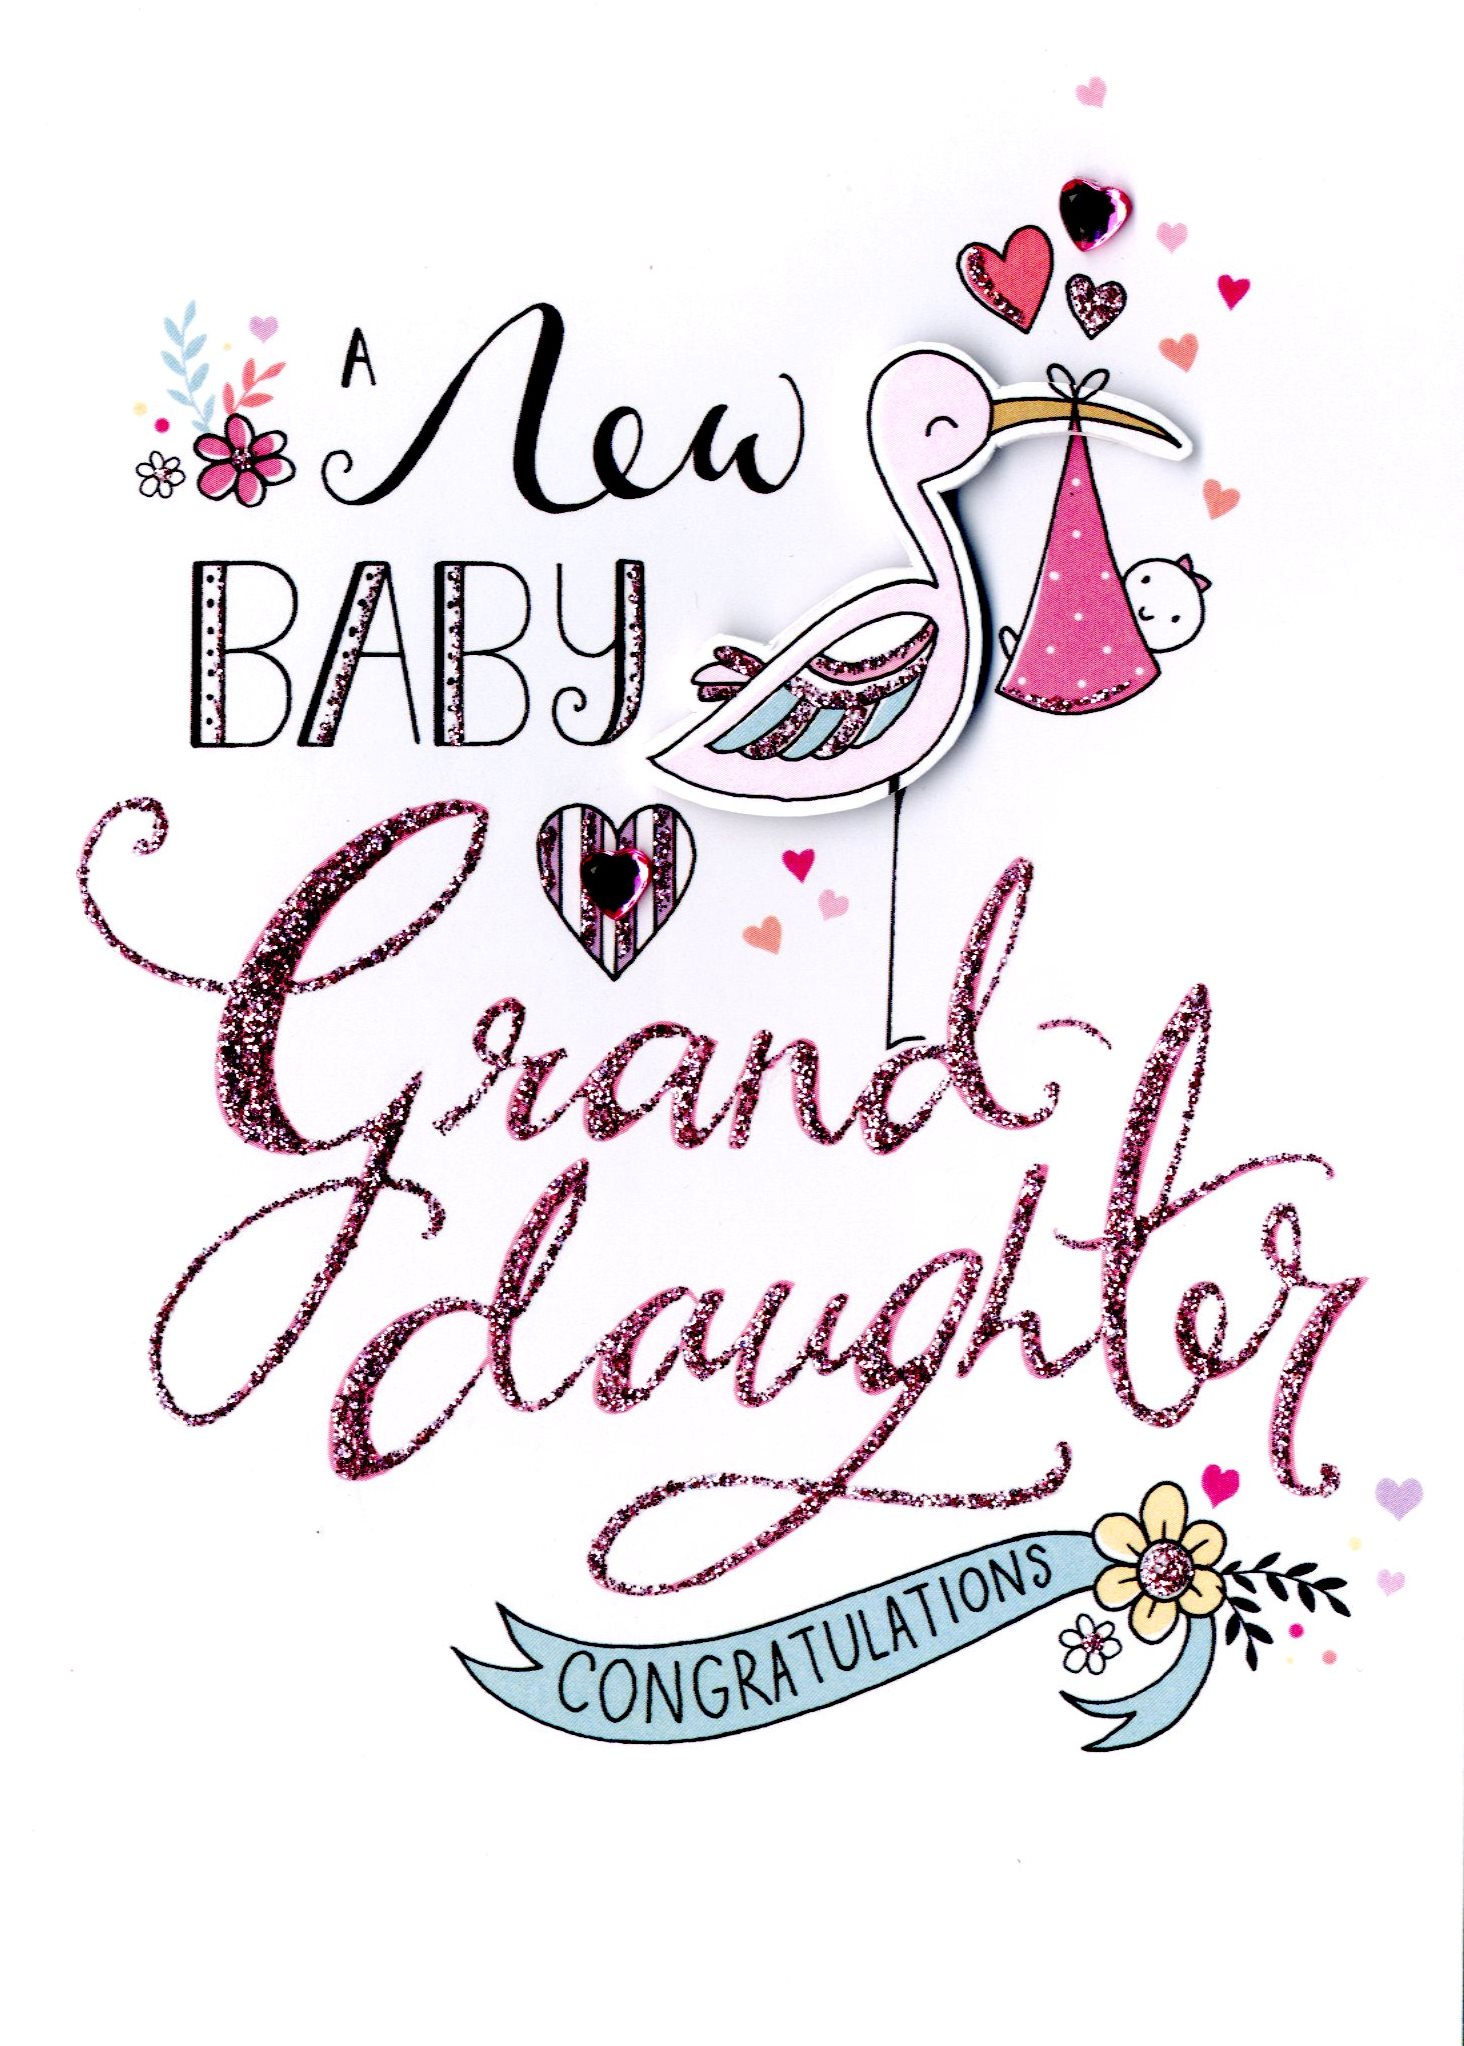 New baby granddaughter greeting card cards love kates new baby granddaughter greeting card m4hsunfo